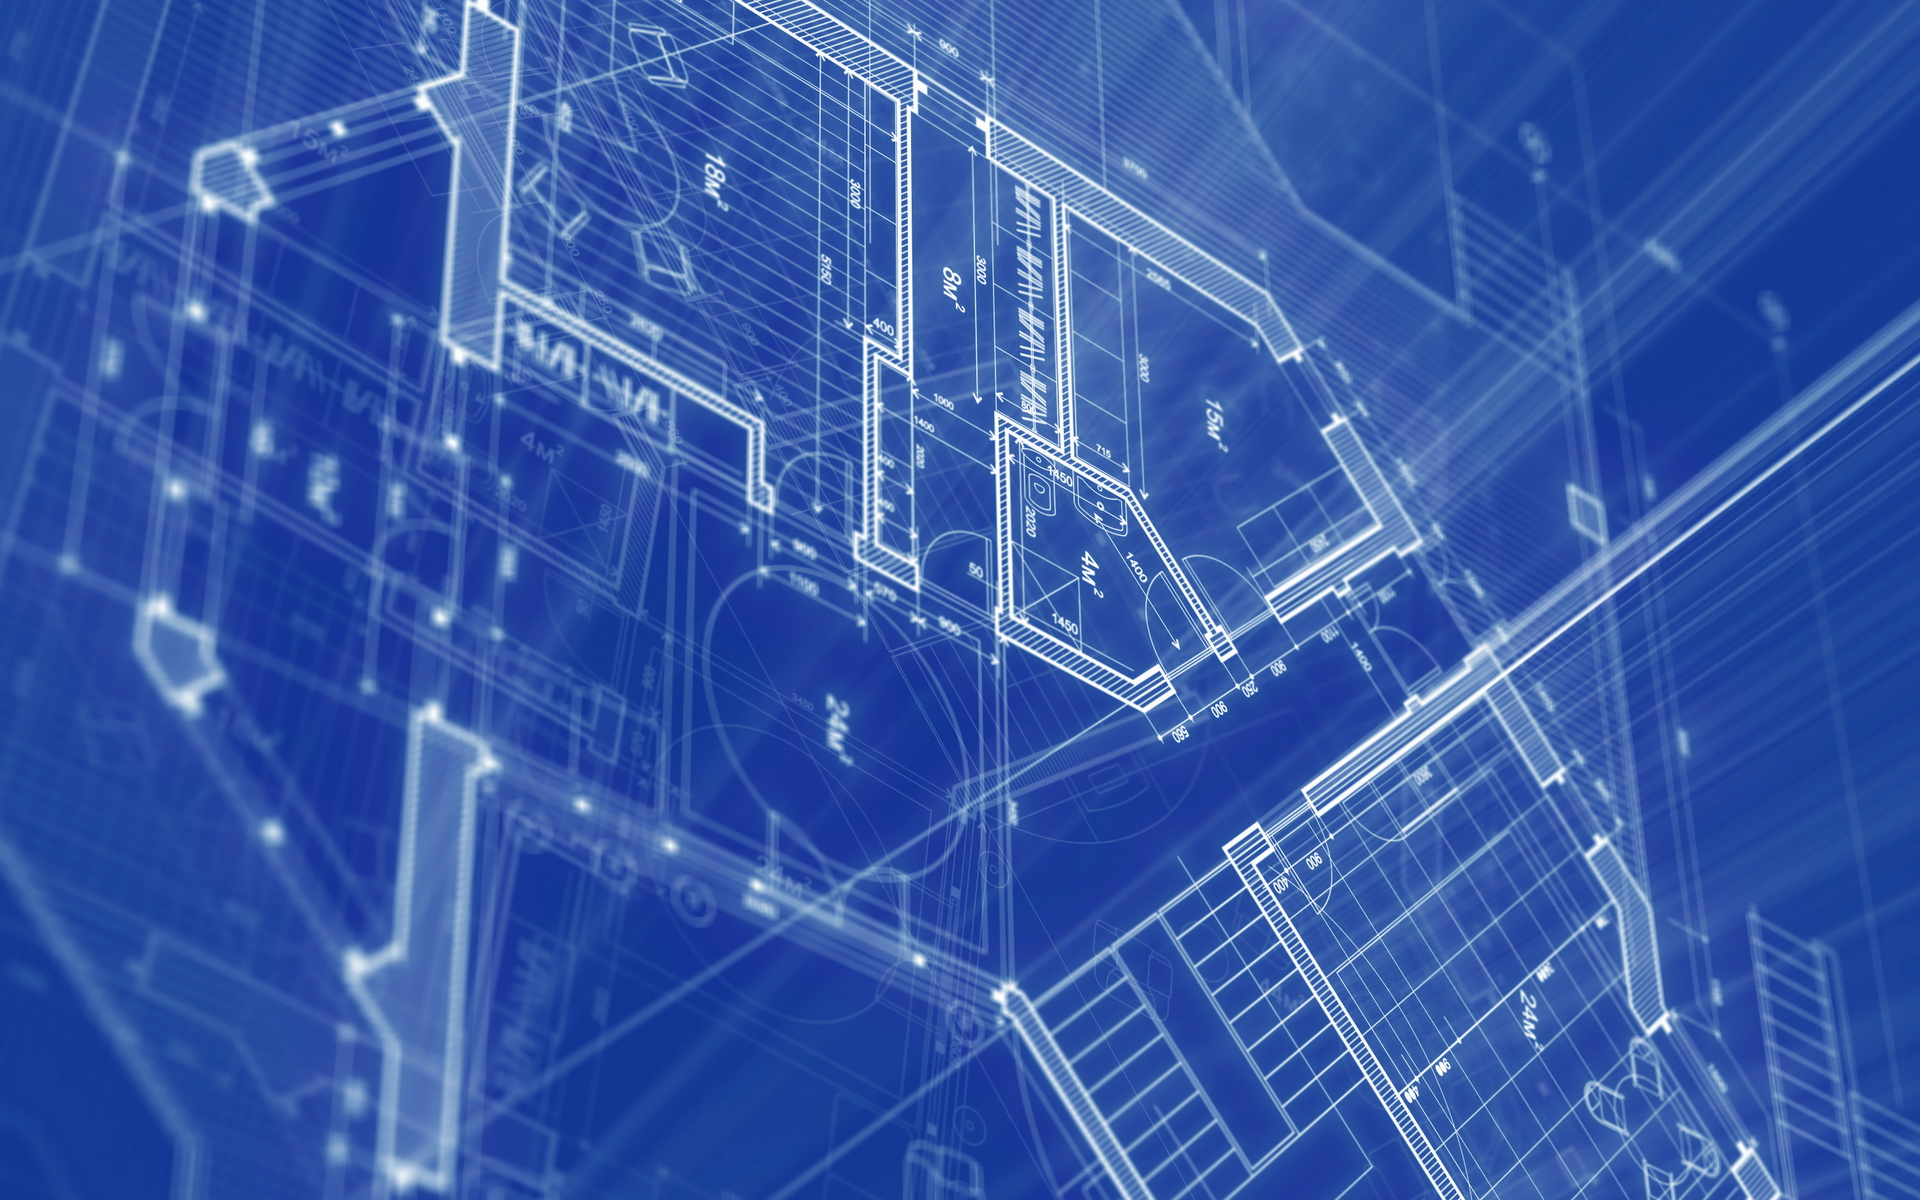 Architecture House Blueprints Wallpapers